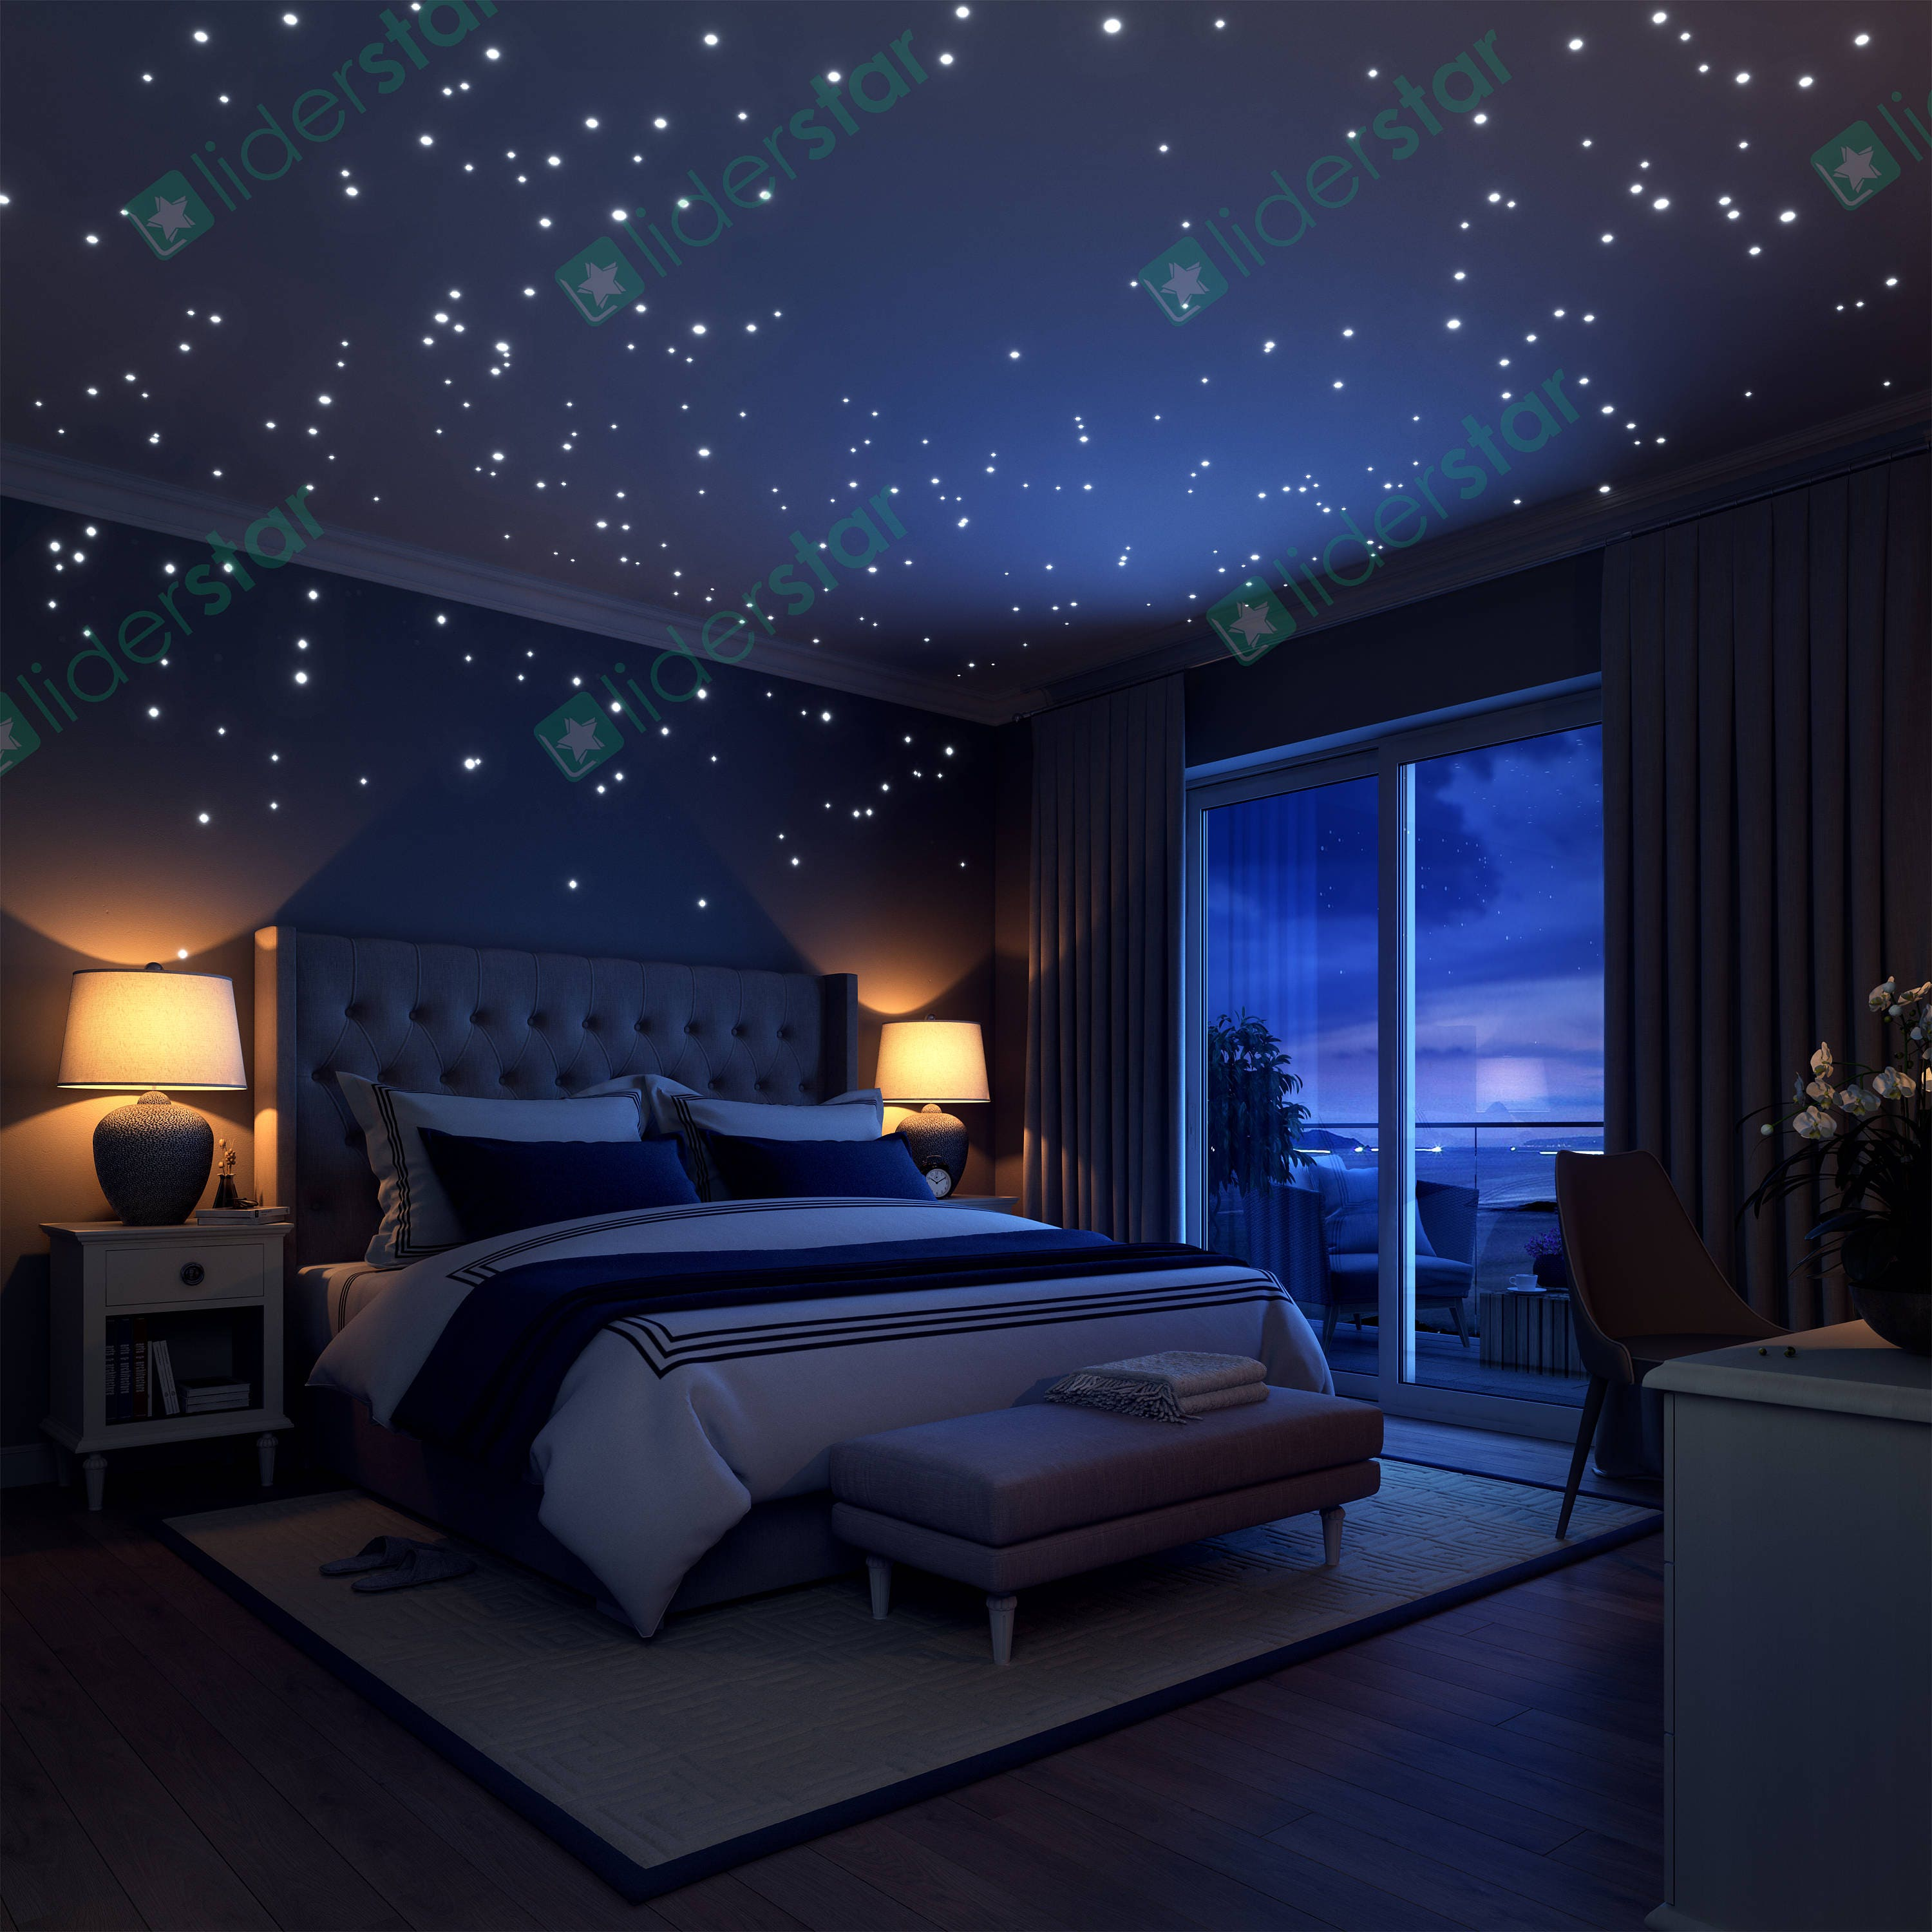 Bedroom ceiling lights stars - Glow In The Dark Stars 252 Romantic Realistic Dots And Moon Wall Decals Stars For Ceiling For Any Bedroom